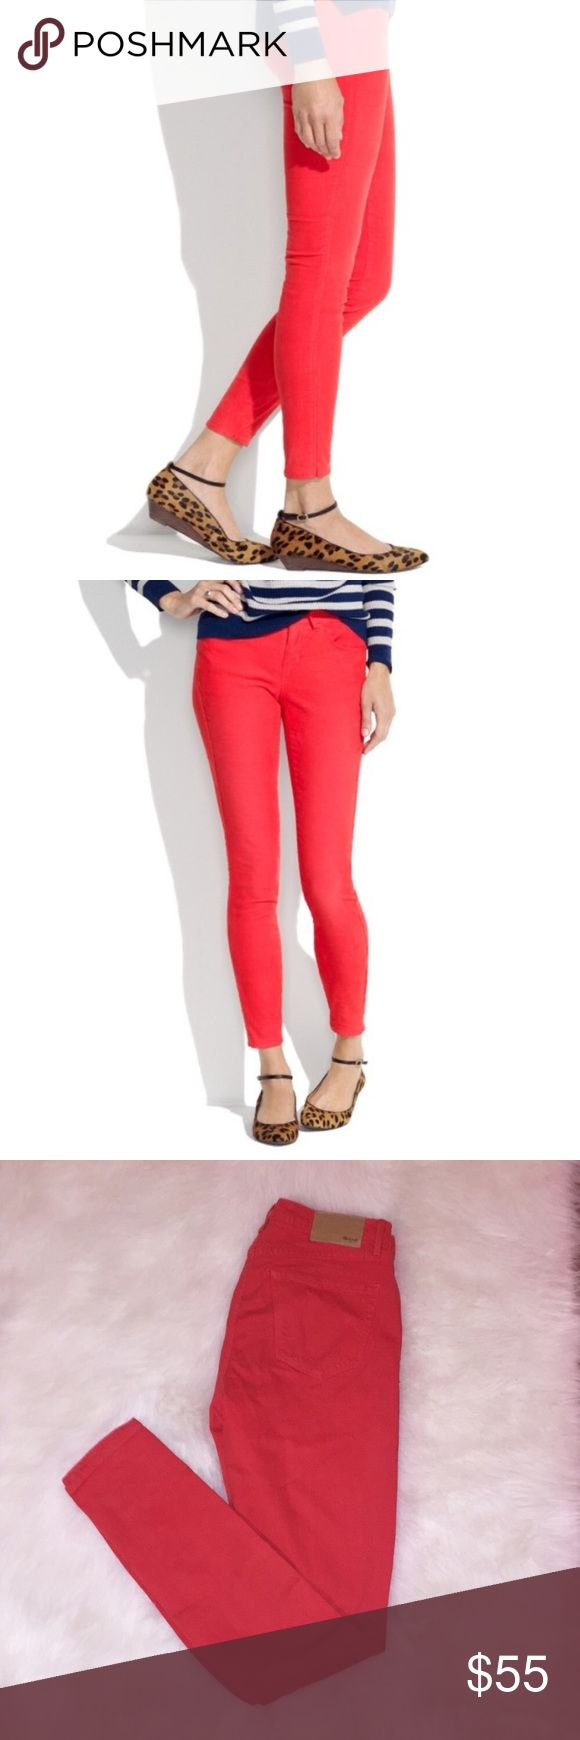 MADEWELL Bright Coral Skinny Skinny Pants 26 Brand new with tags MADEWELL Orange Red Skinny Skinny Pants in size 26. Inseam 32. Madewell Pants